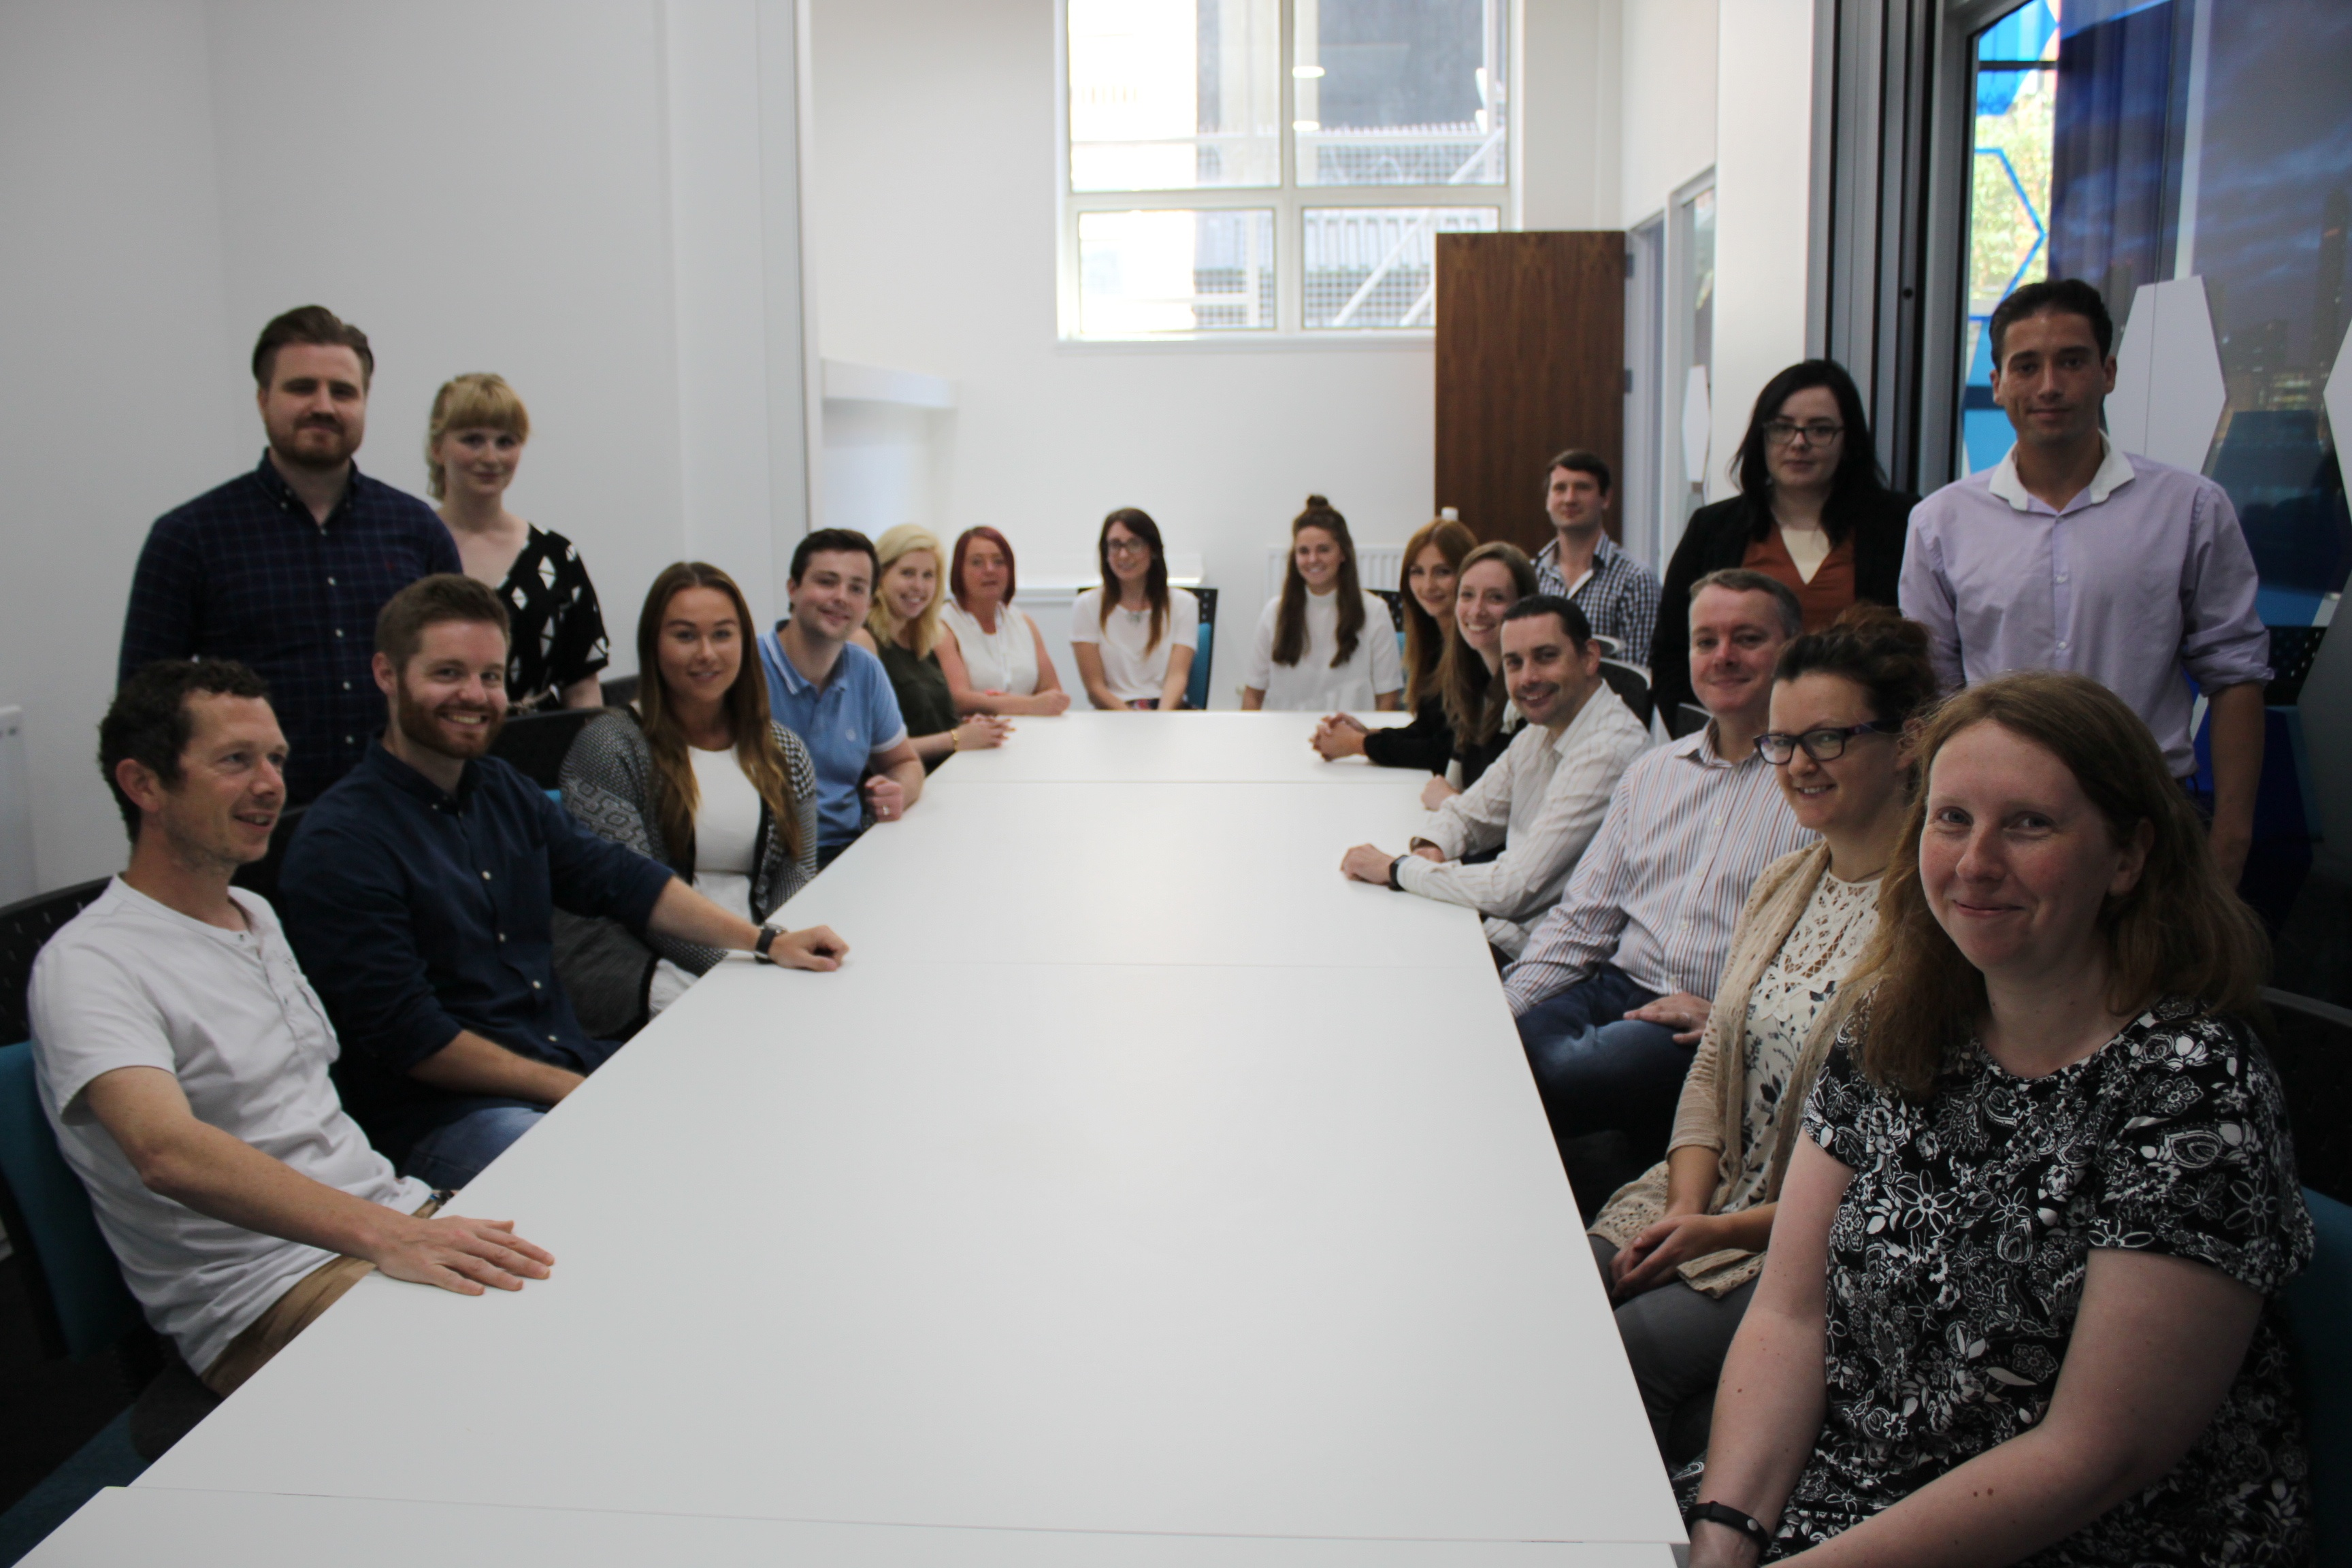 Liverpool digital agency, Hit Search, celebrate three internal staff promotions